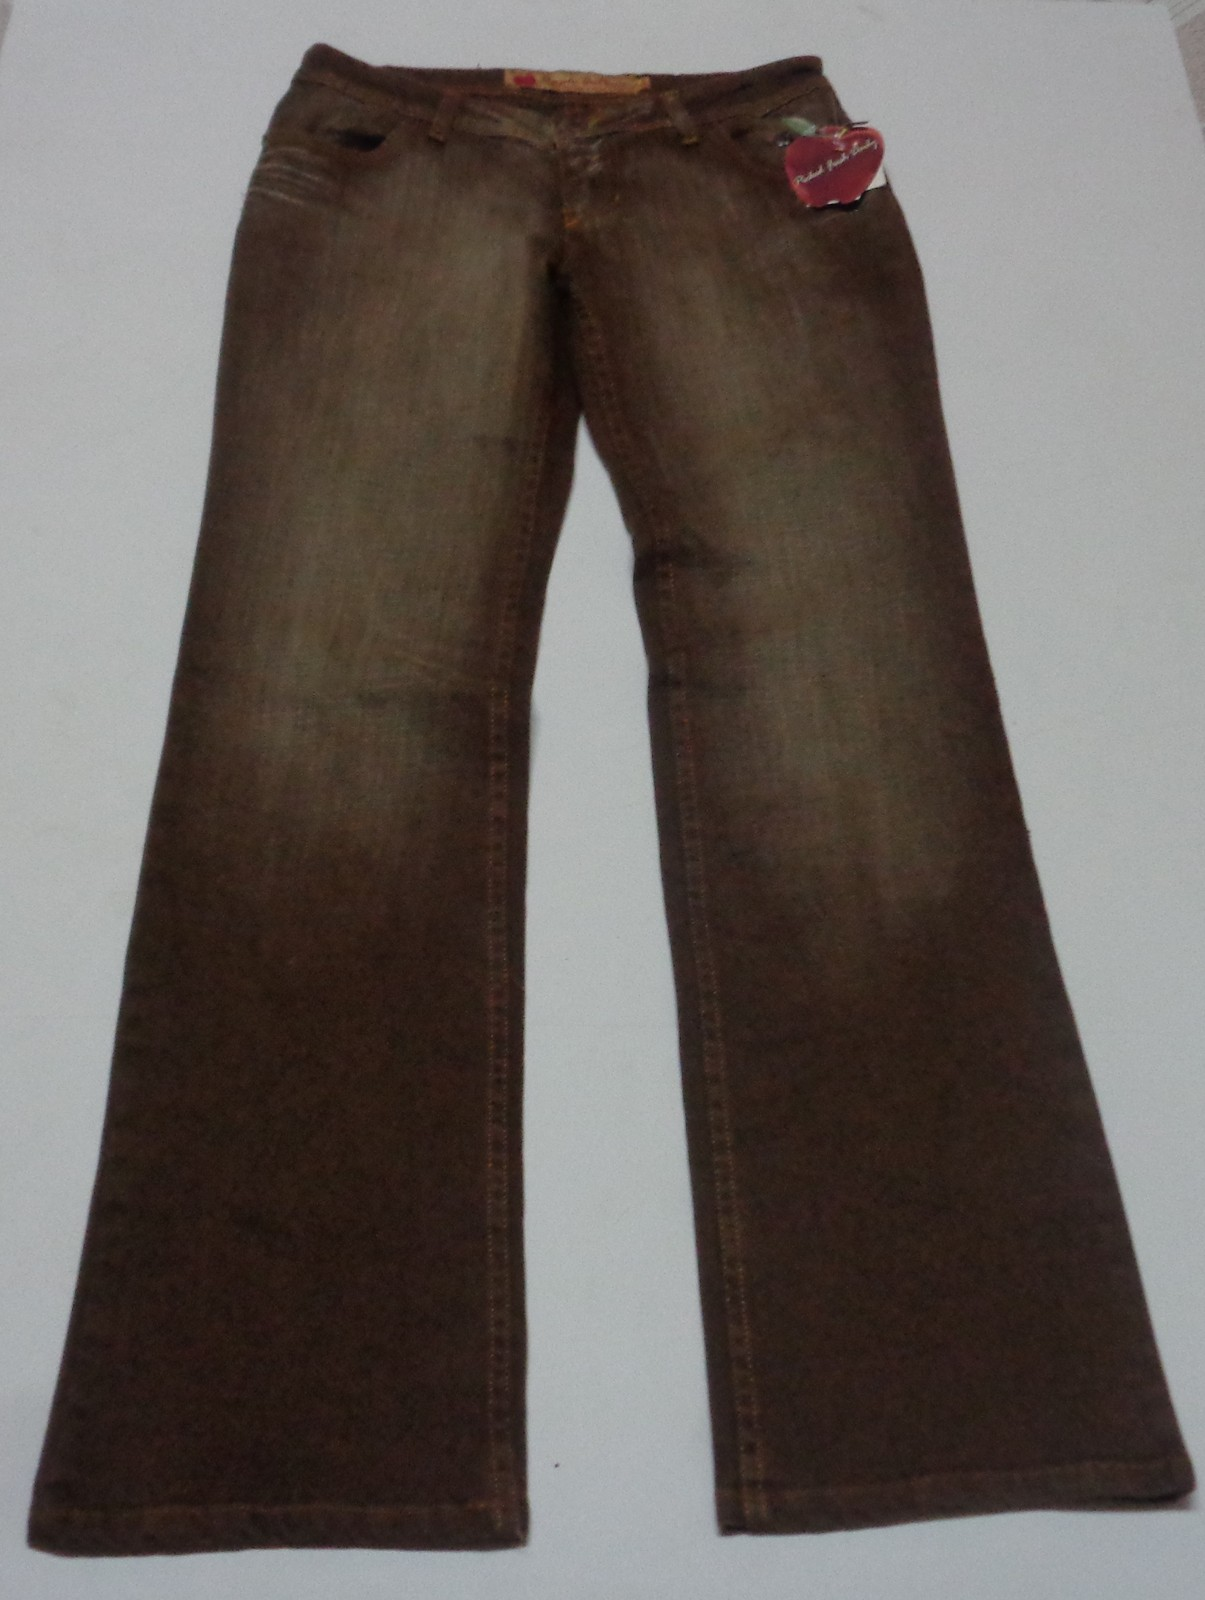 Apple Bottoms Brown Jeans NWT Size 9/10